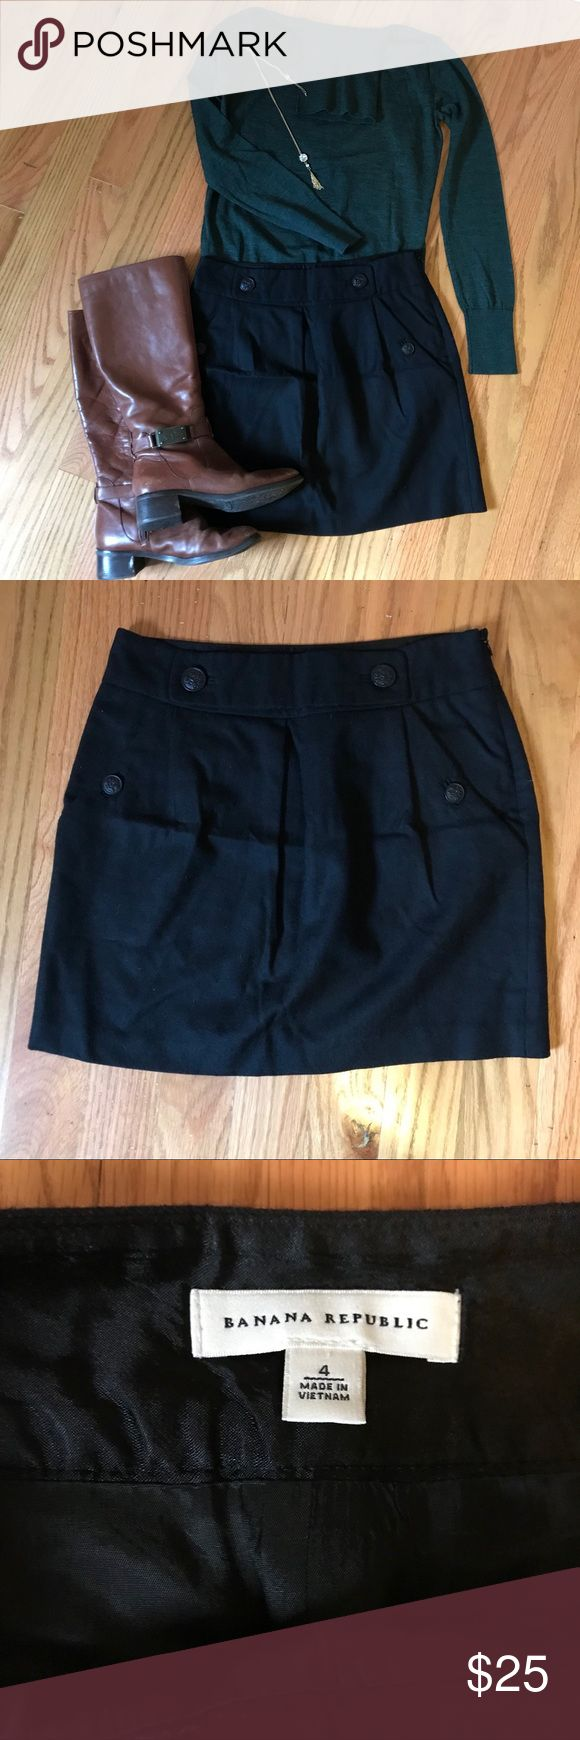 "Banana Republic Black Wool Military style Skirt NWOT Banana Republic Black wool military style skirt. This skirt is super cute when paired with boots, tights and a sweater. Size 4. 14 1/2"" waist 16 1/2"" length Banana Republic Skirts Midi"